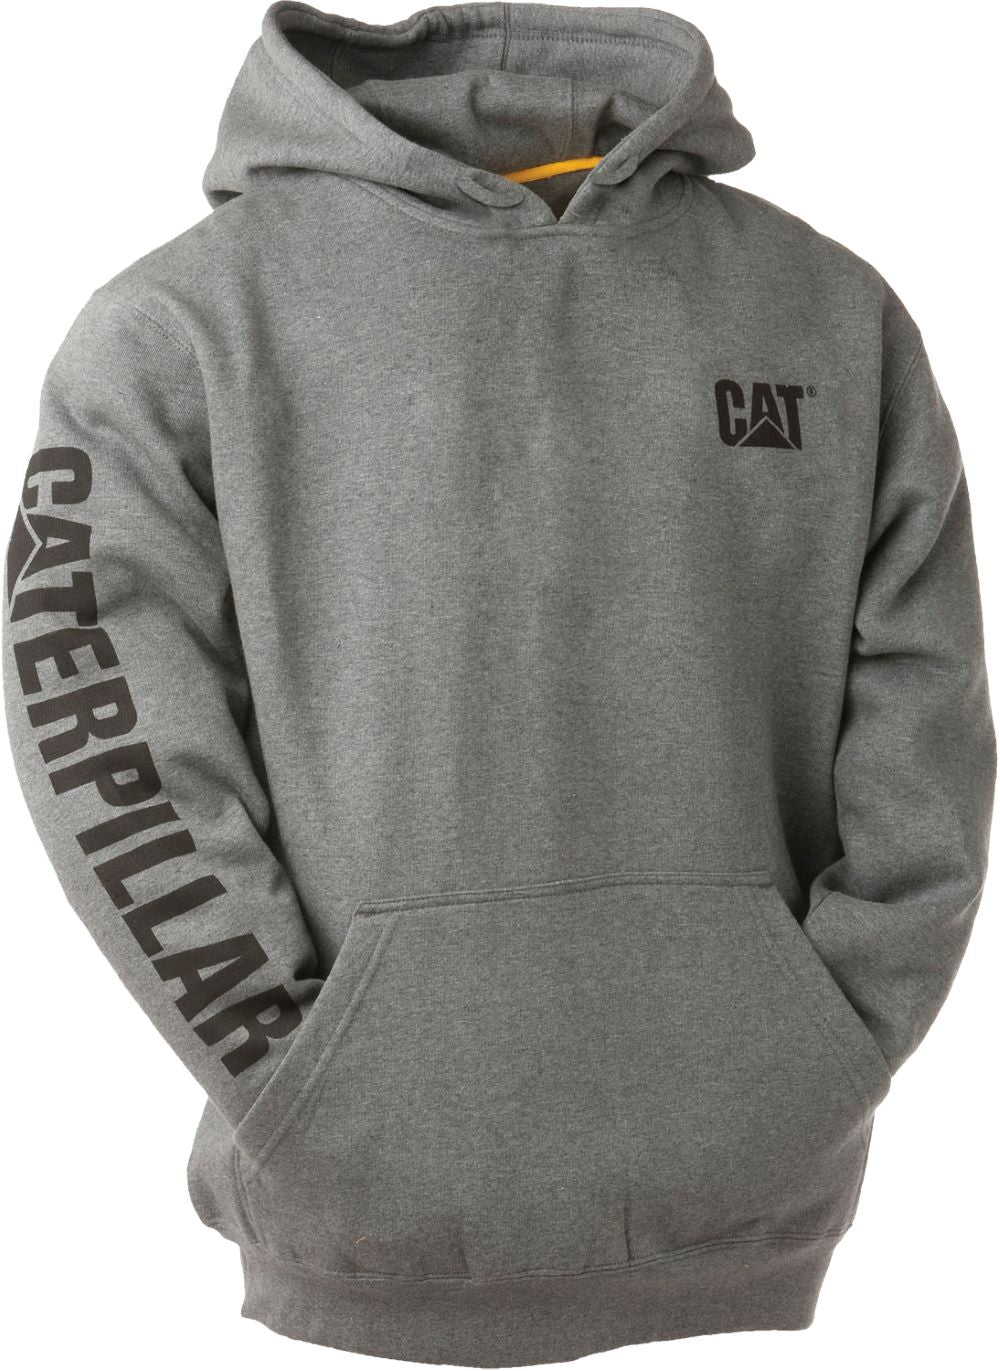 'Caterpillar' Men's Trademark Banner Hooded Sweatshirt - Dark Heather Grey